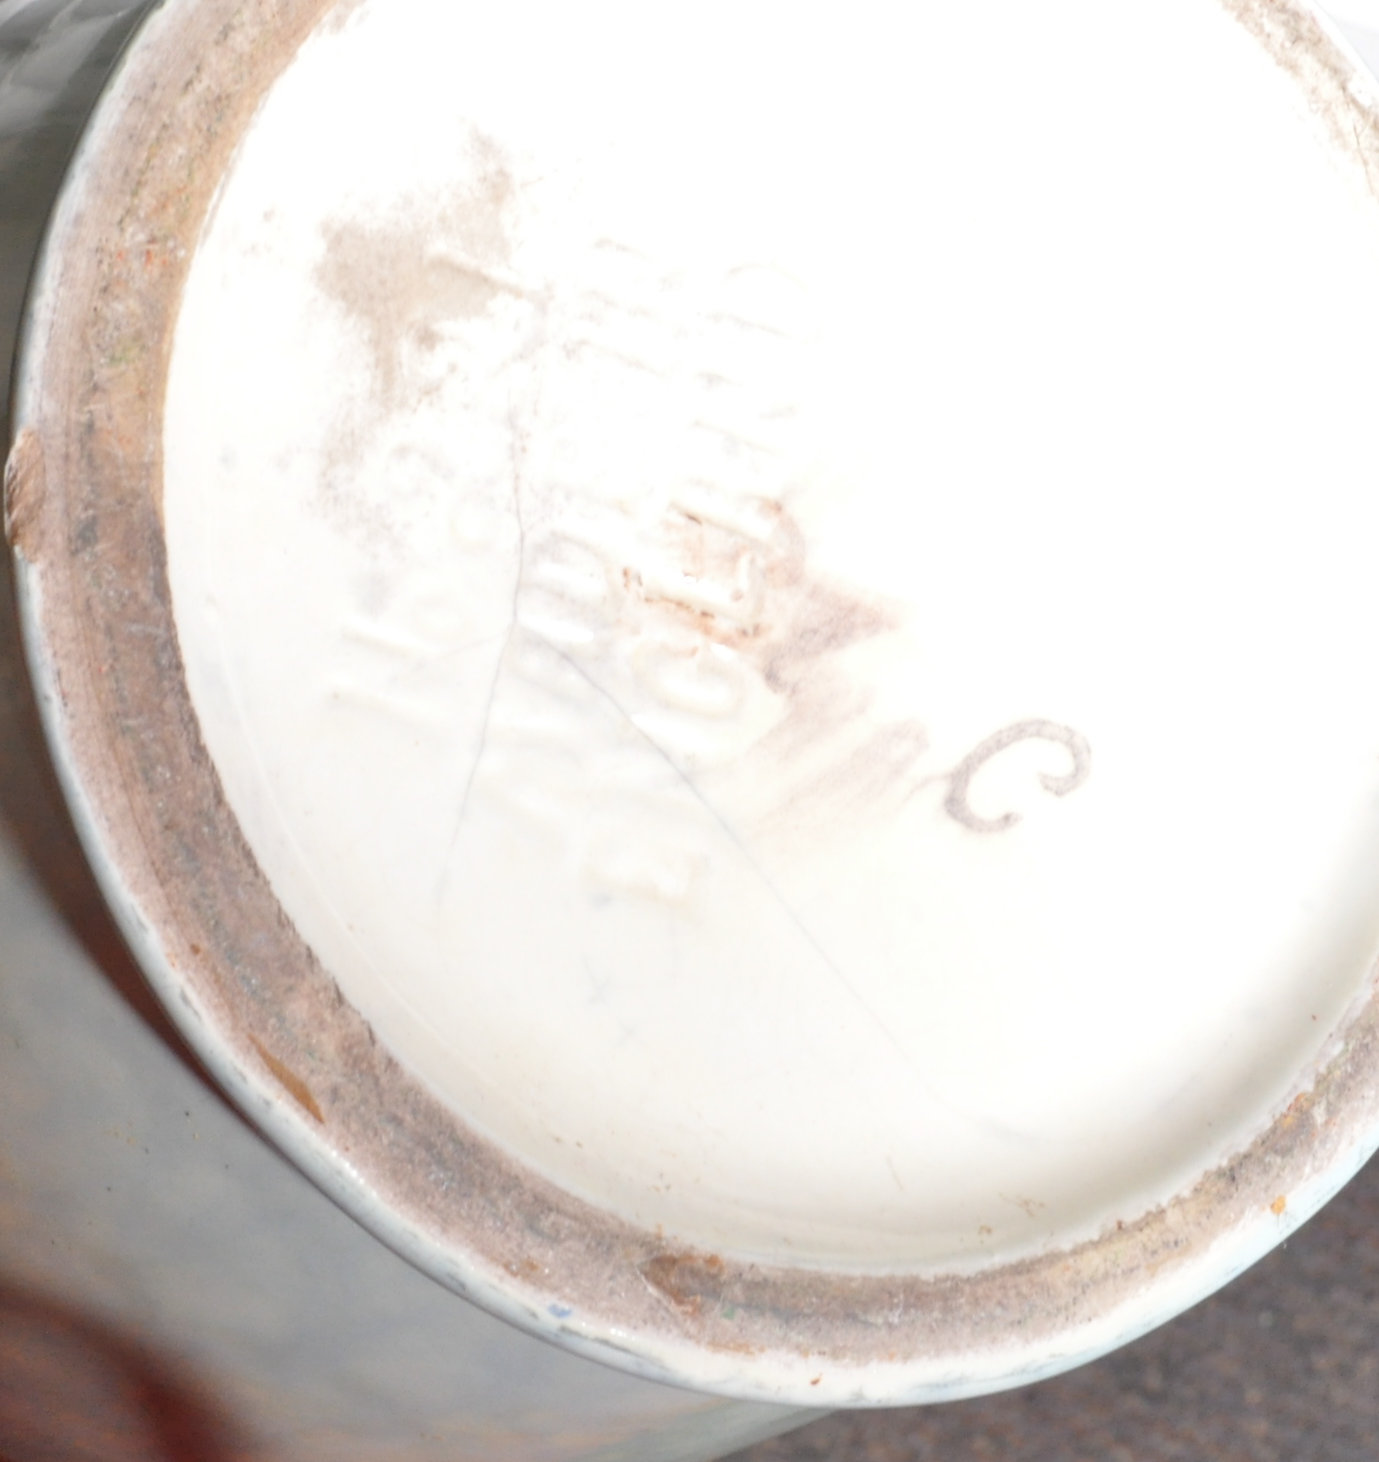 COLLECTION OF VINTAGE 20TH CENTURY CERAMICS - Image 10 of 10